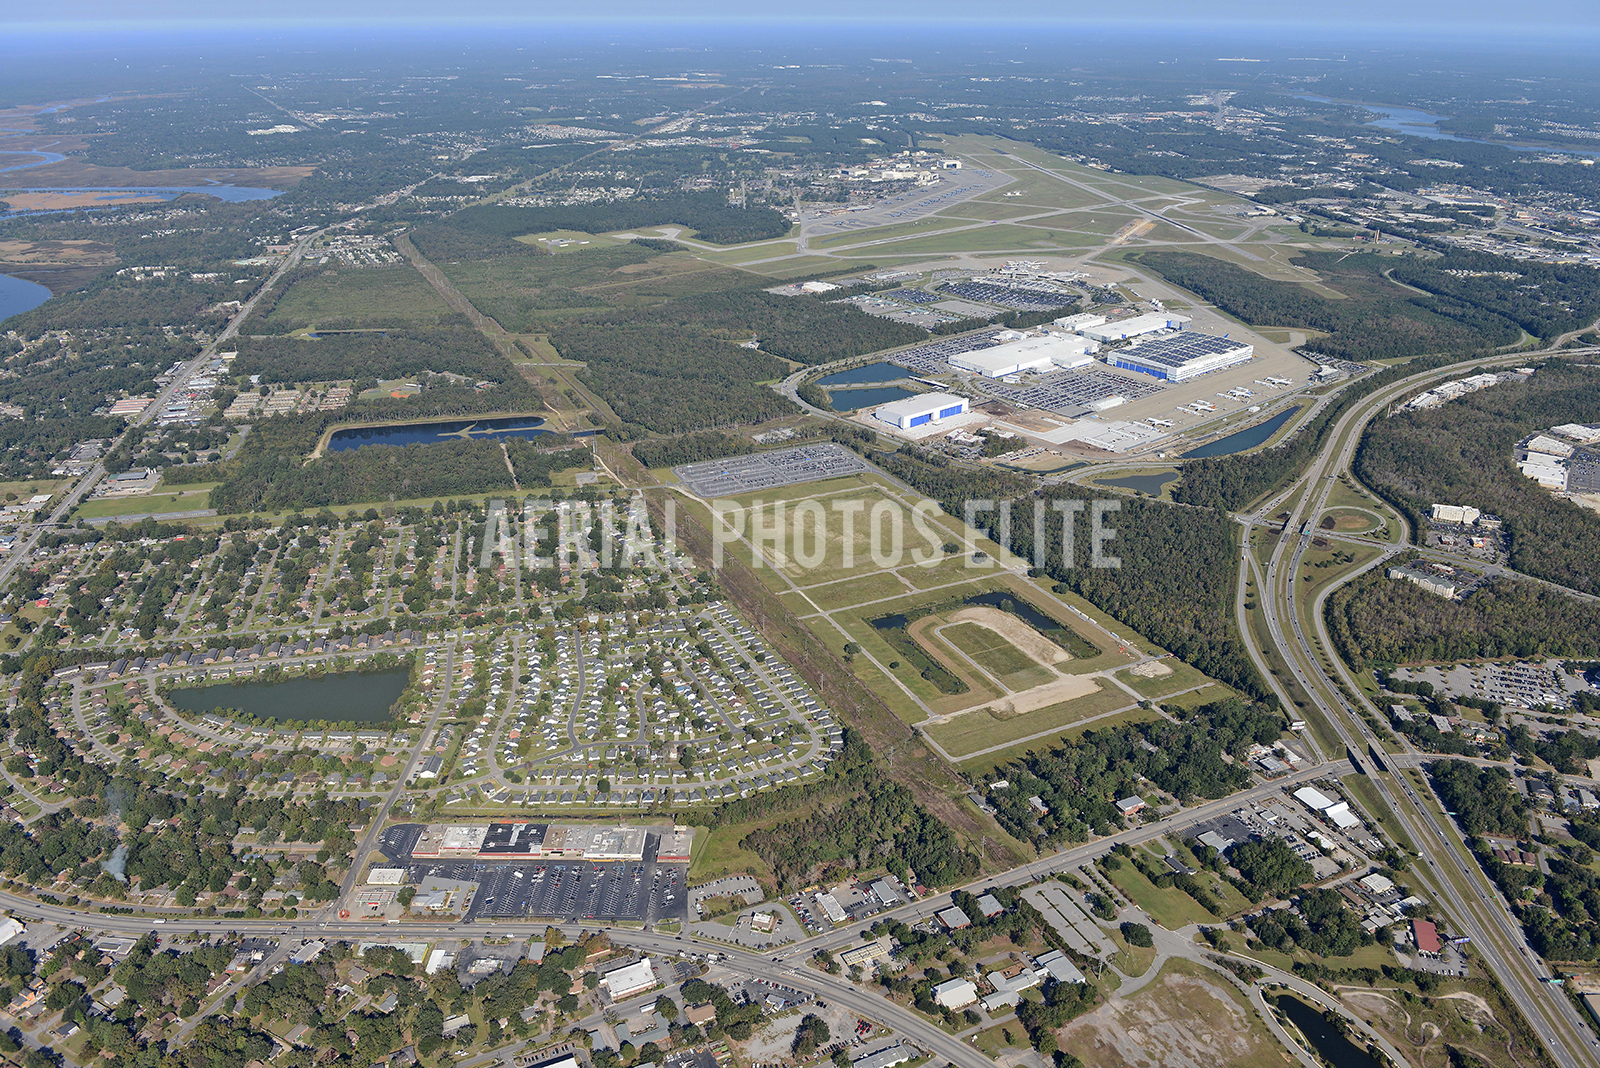 Boeing At a Distance Charleston, SC | Aerial Photos Elite | Aerial Photos Elite